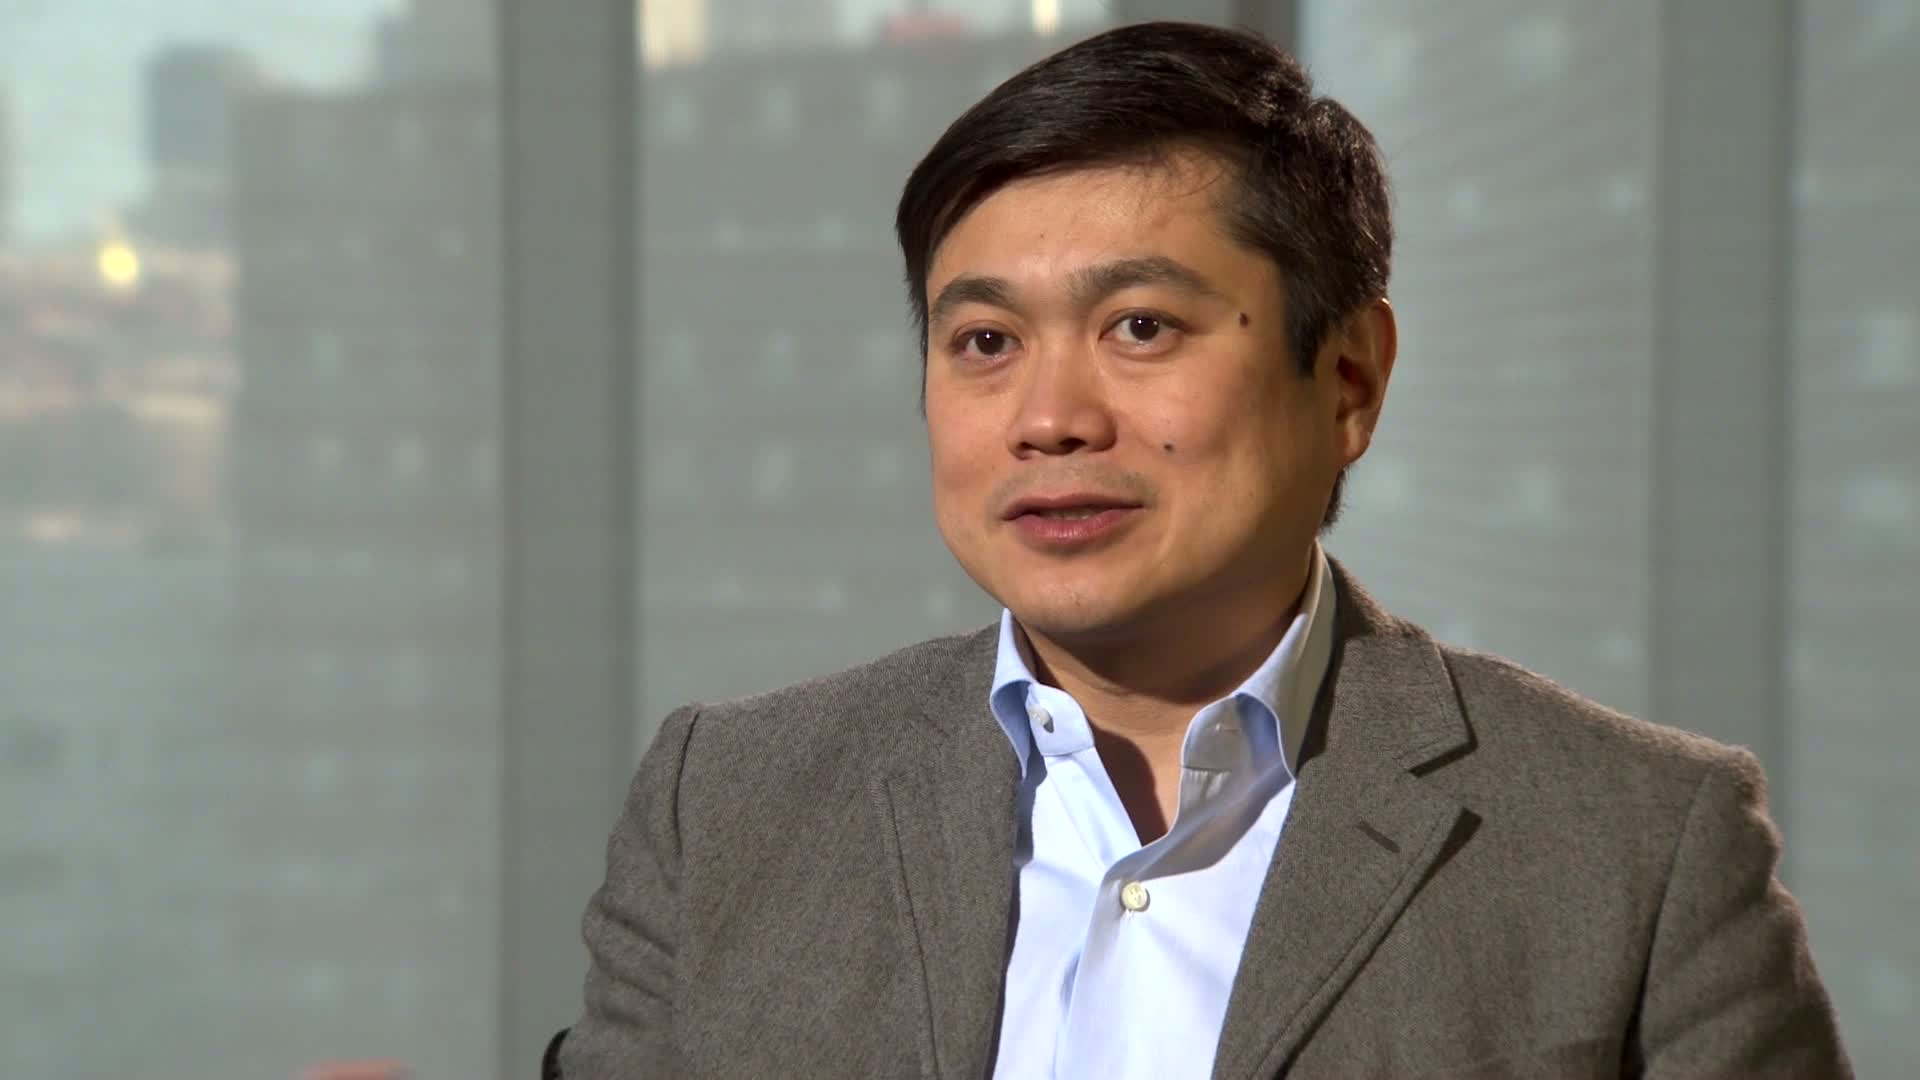 AUFA 2014 - Joi Ito about the future of mobility.